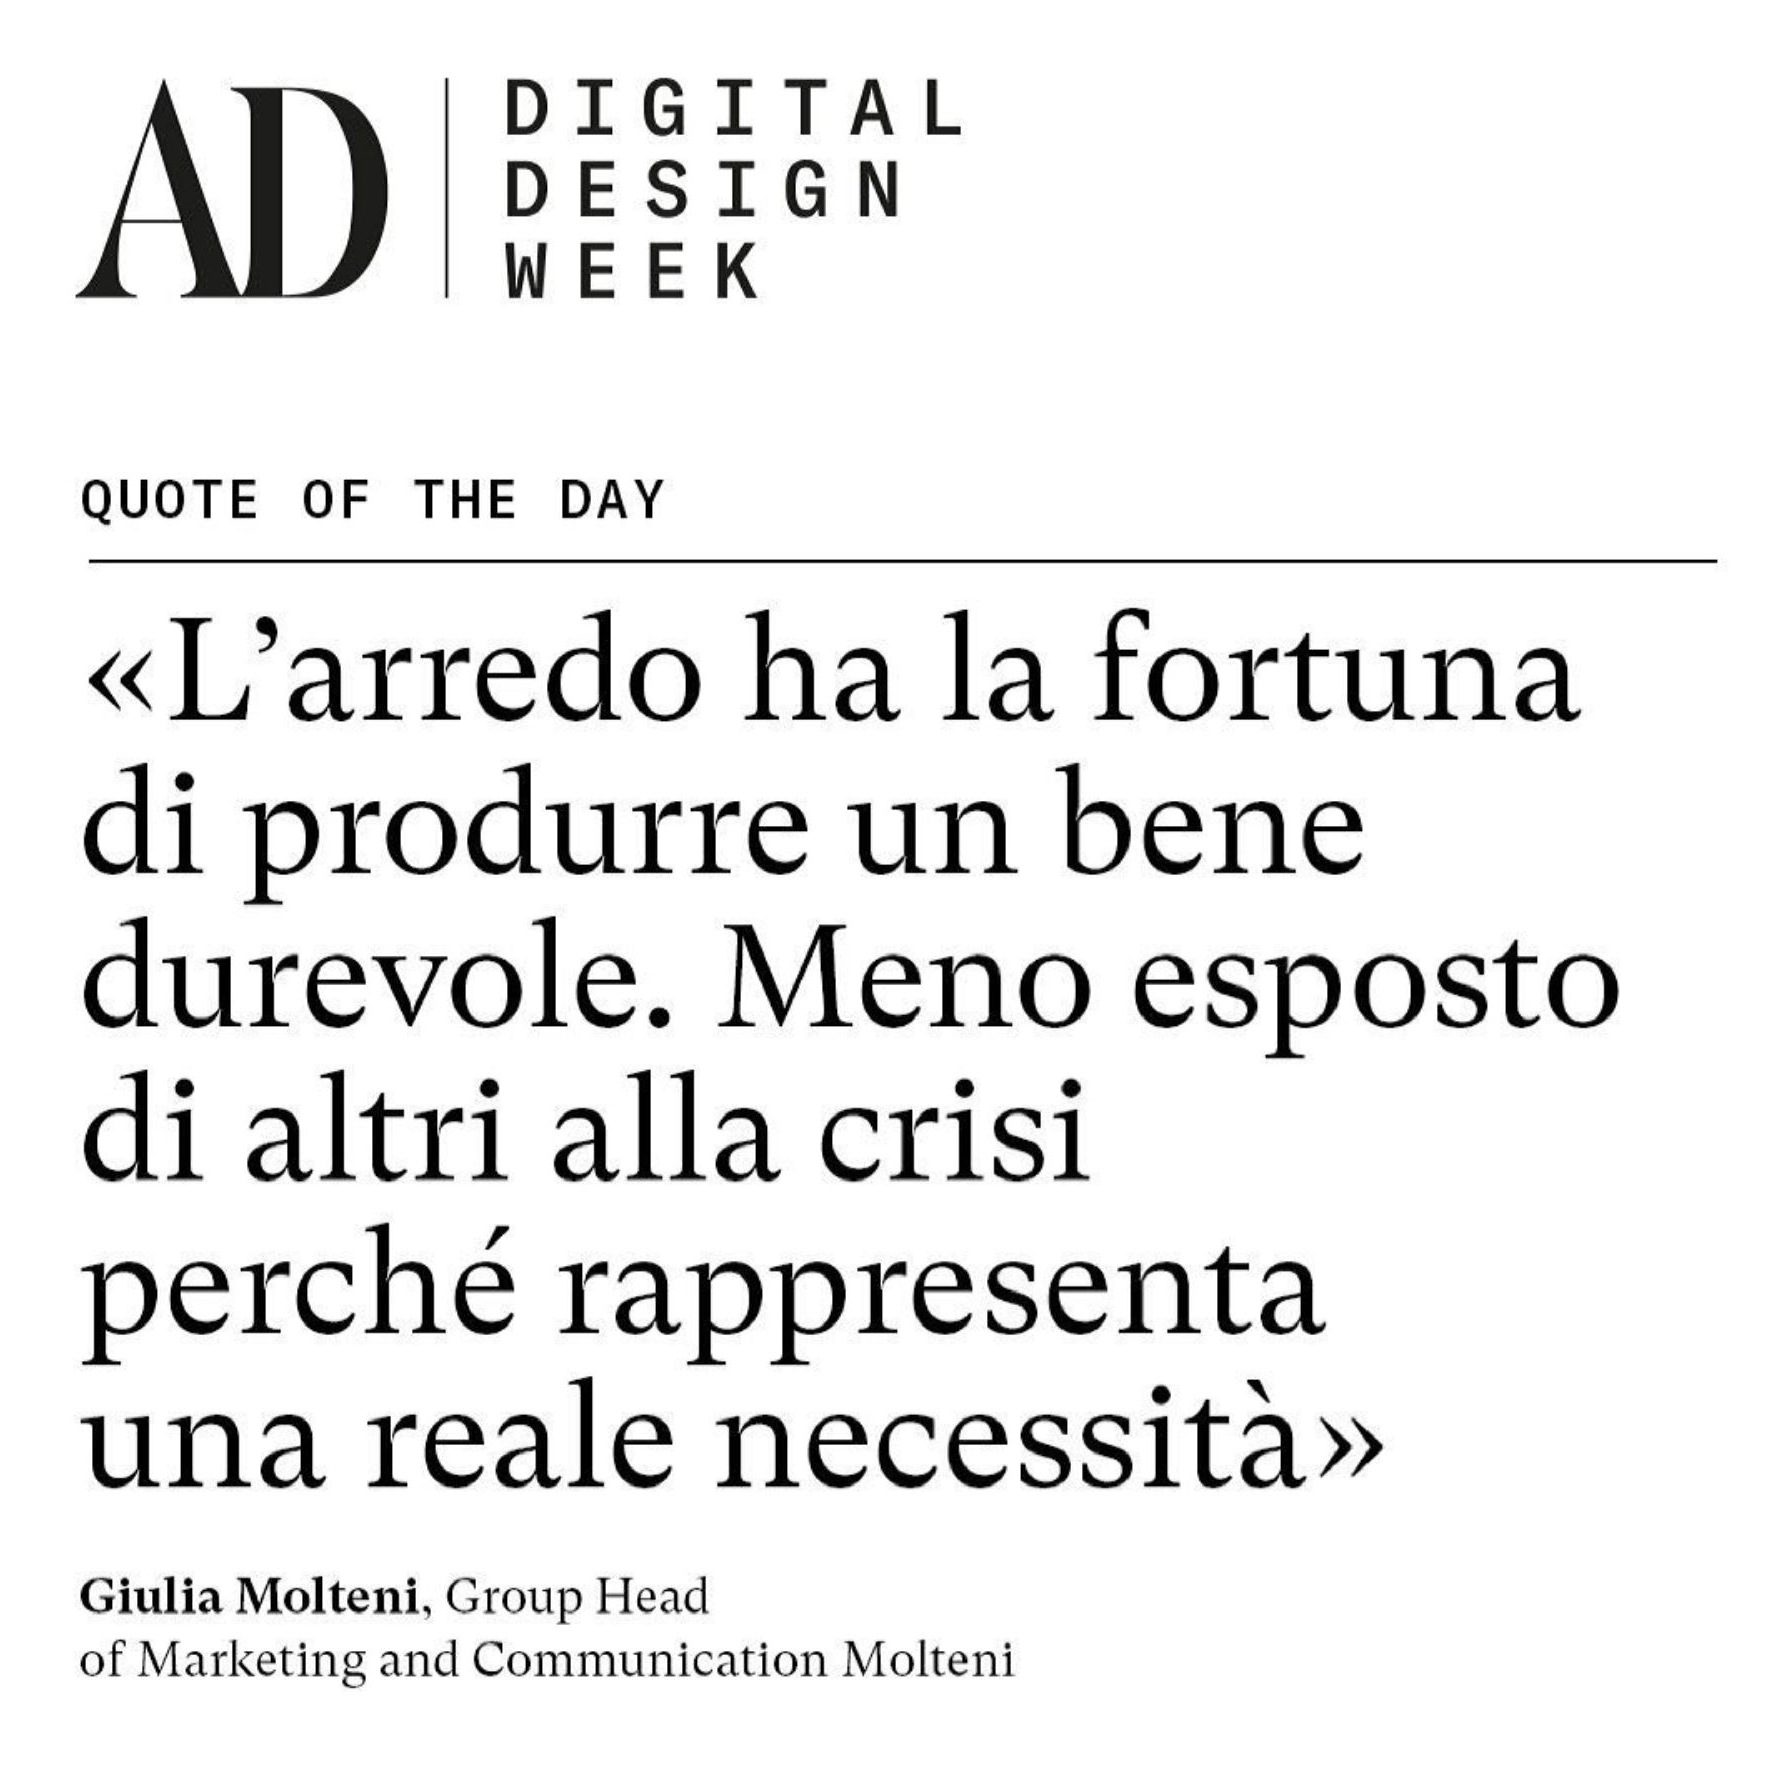 Digital-Design-Week-quote-Giulia-Molteni